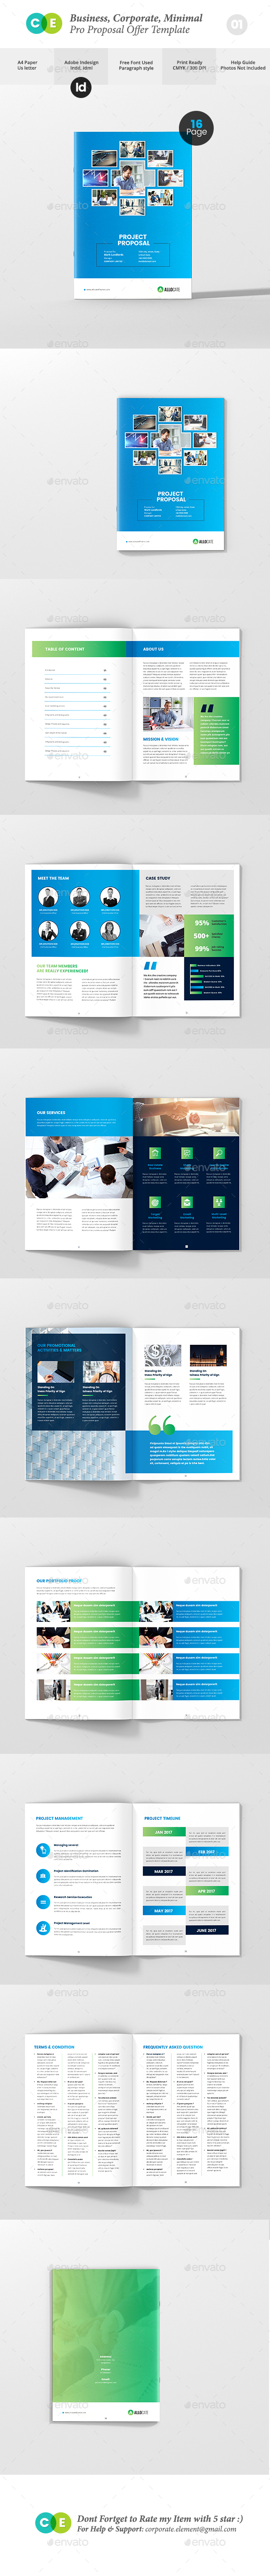 Clean Corporate Minimal Proposal Template V01 - Proposals & Invoices Stationery